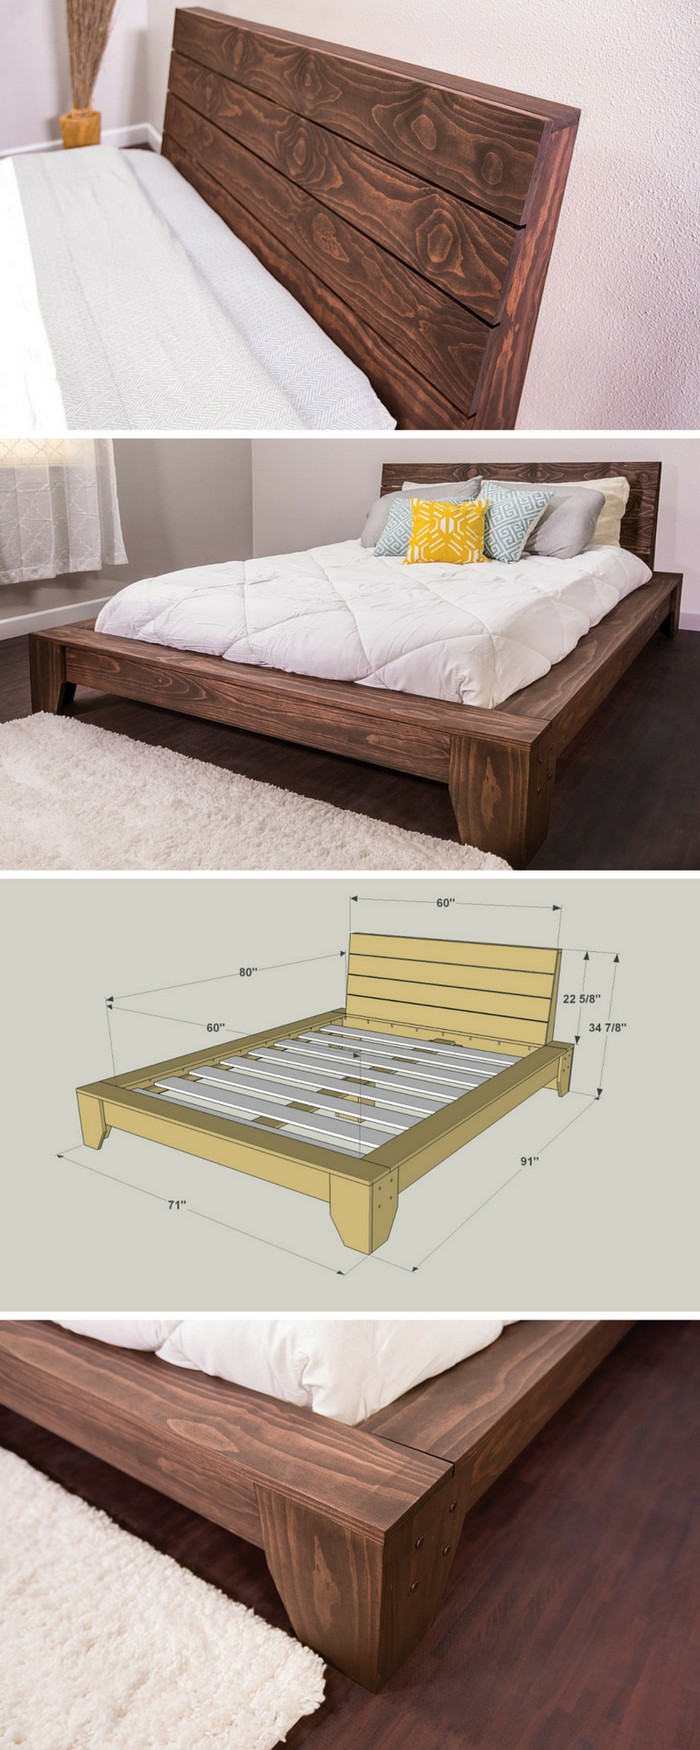 Diy bed ideas to make your bedroom fabulous diy home decor for Diy for your bedroom